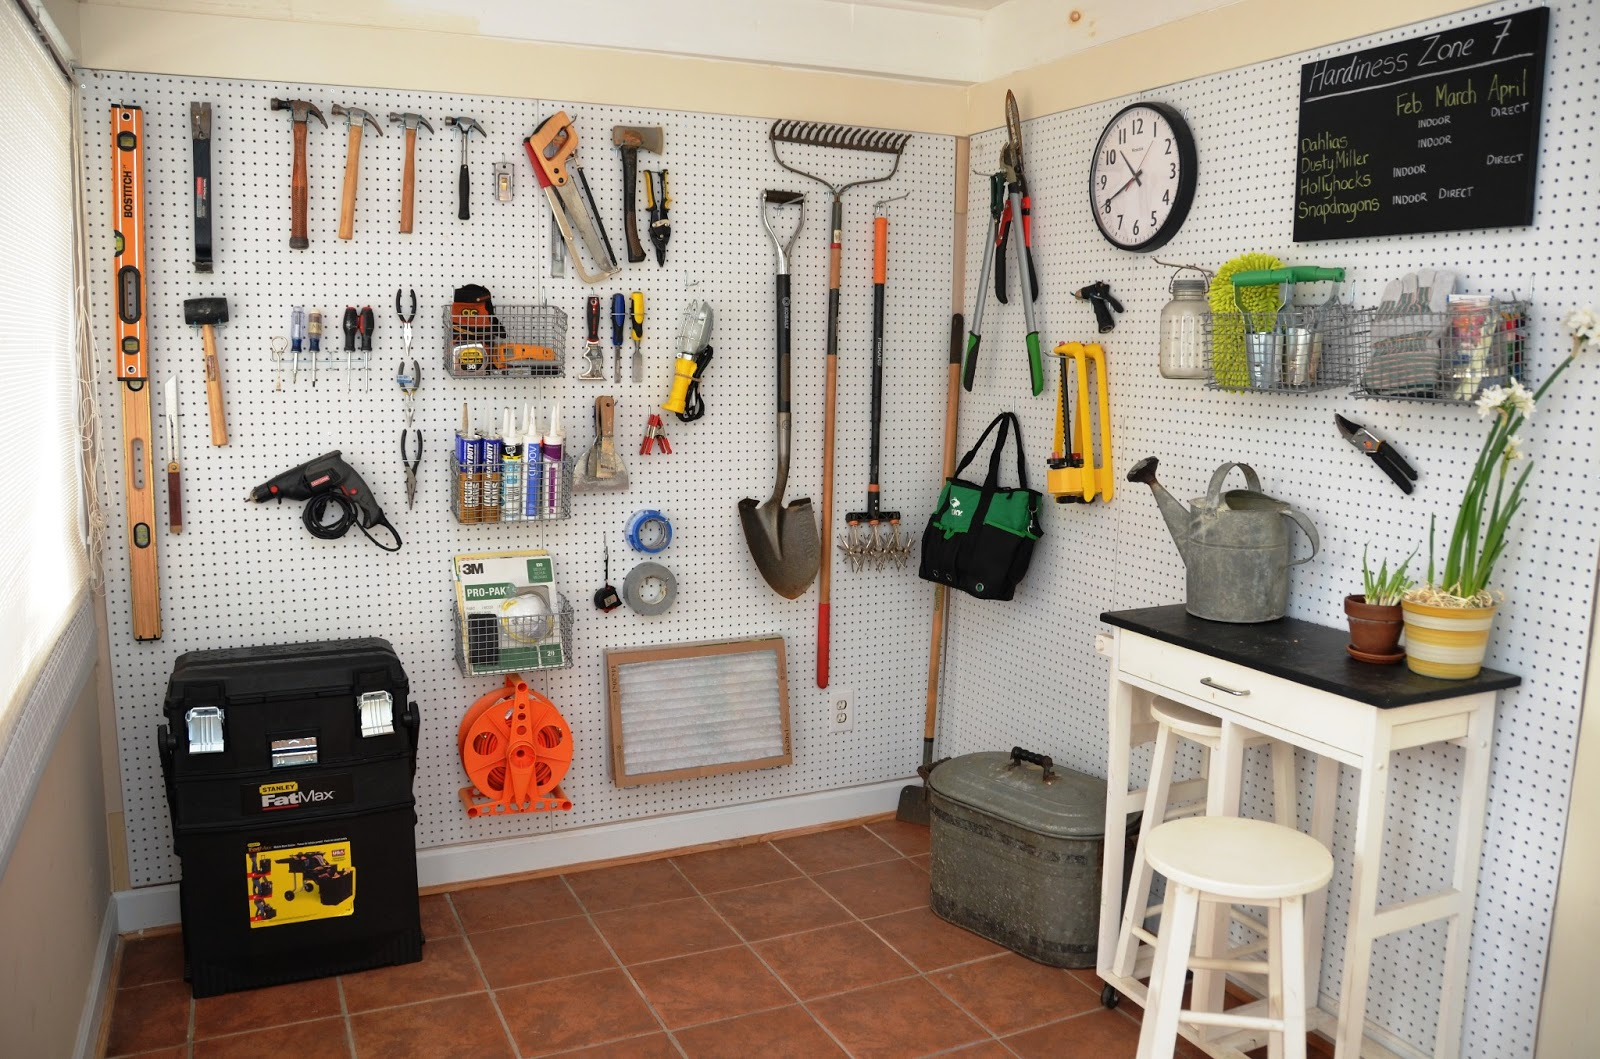 8 Ways to Organize With a Peg Board2